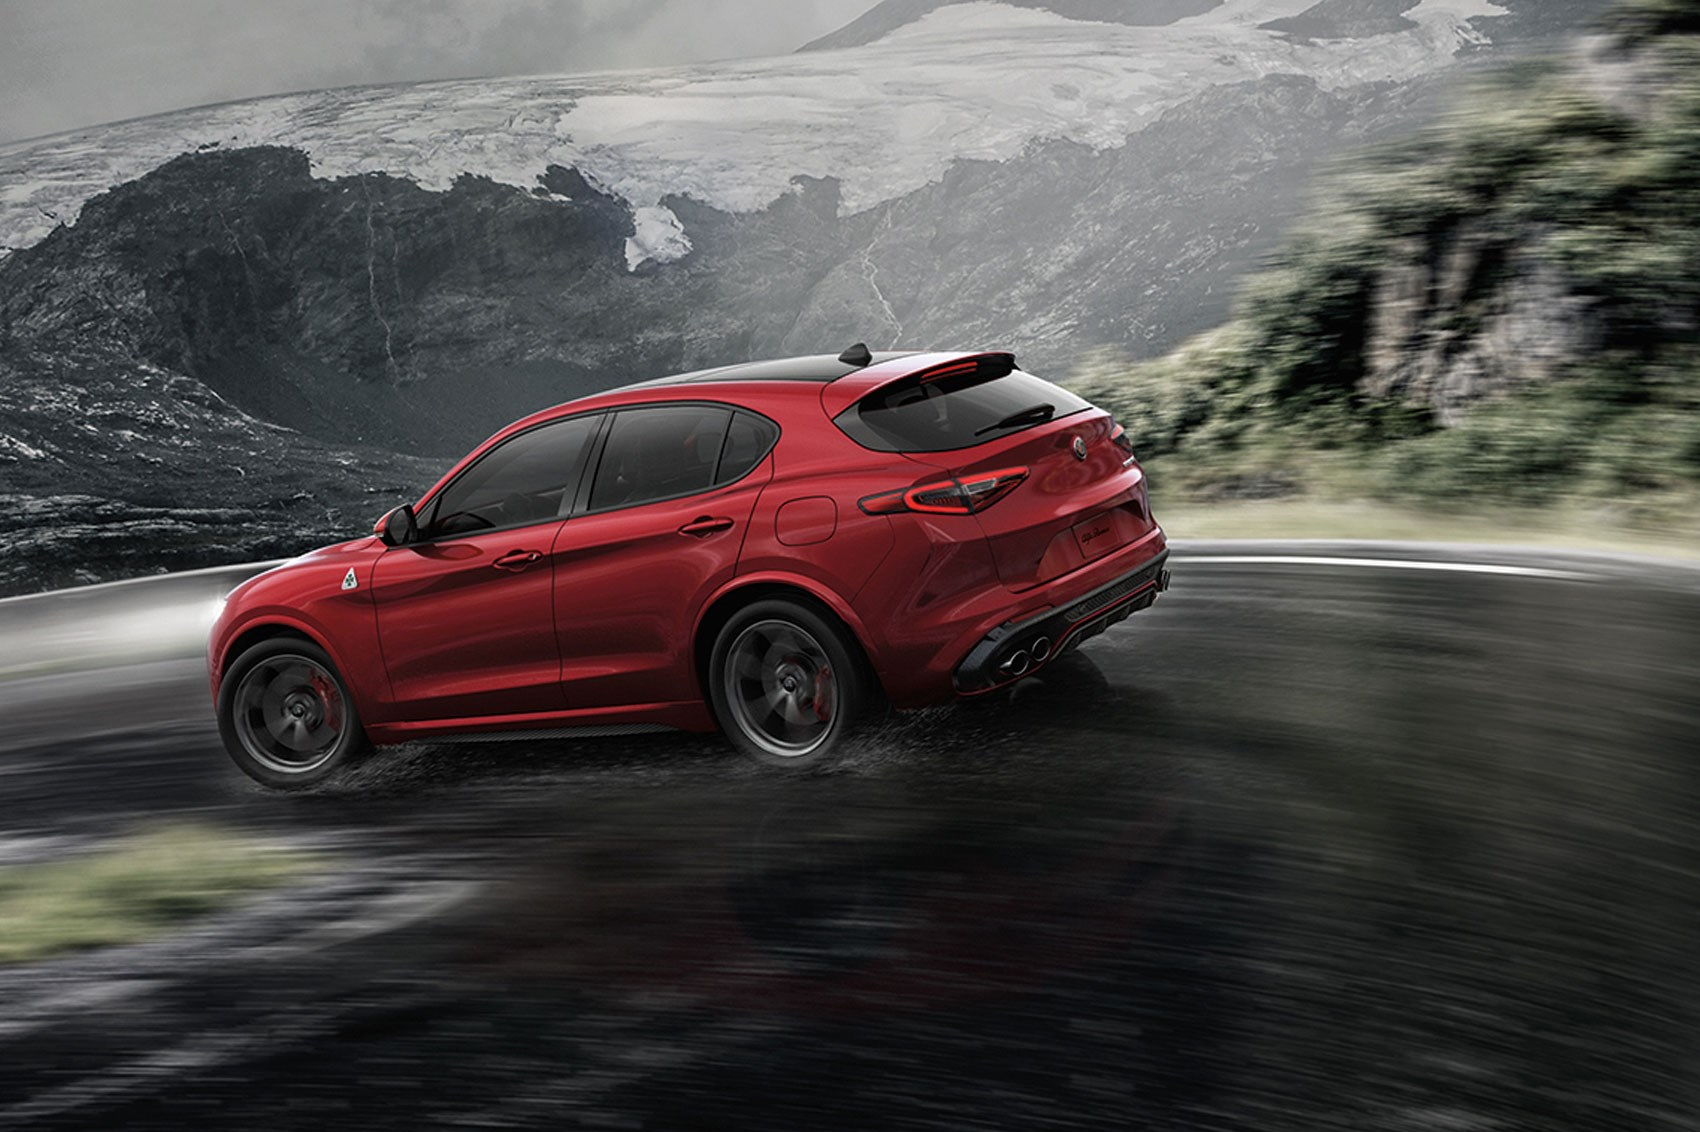 new alfa romeo stelvio quadrifoglio suv revealed latest news and pictures by car magazine. Black Bedroom Furniture Sets. Home Design Ideas